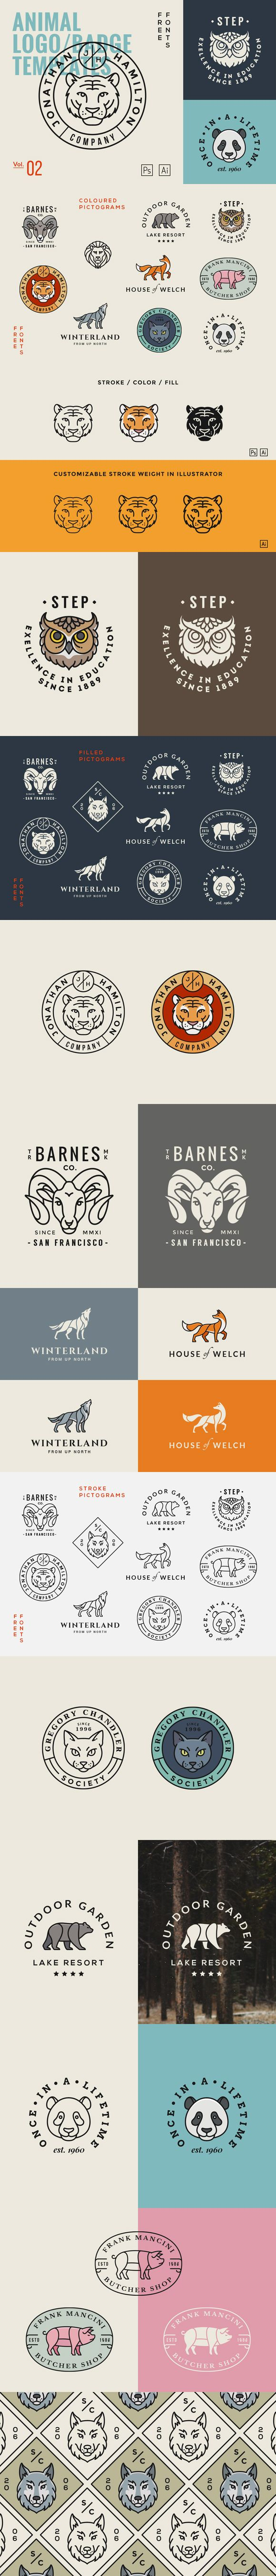 A mix of 10 #animal #logo templates that can be used for #branding projects, apparel design or anything else you can think of. Just edit the text with your own copy and you're good to go #photography #bloggers #traveling #hiking #NGO #forest